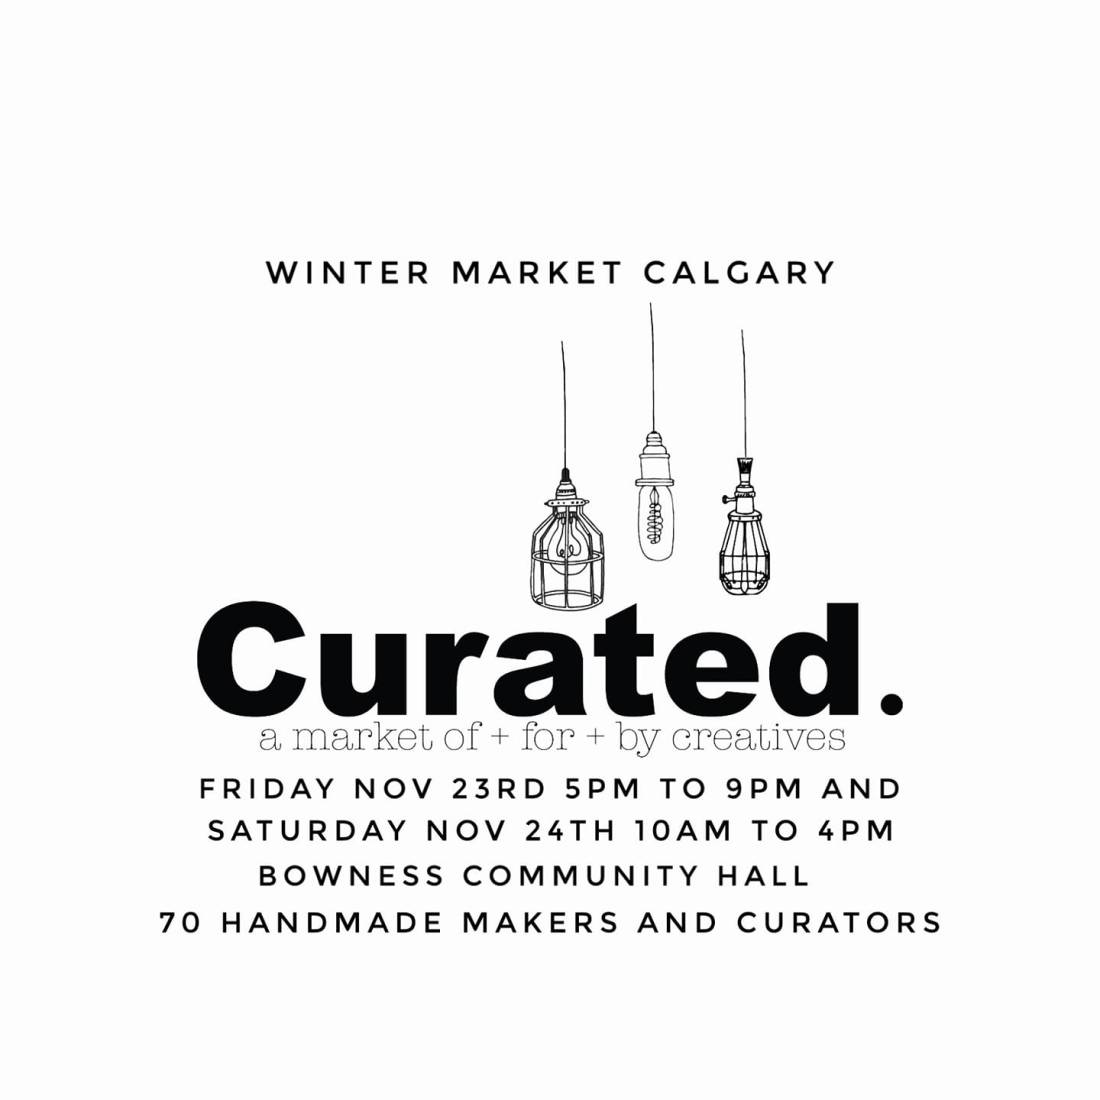 Annex Suspended at Curated in Calgary, Alberta - Handmade market for Christmas Gifts